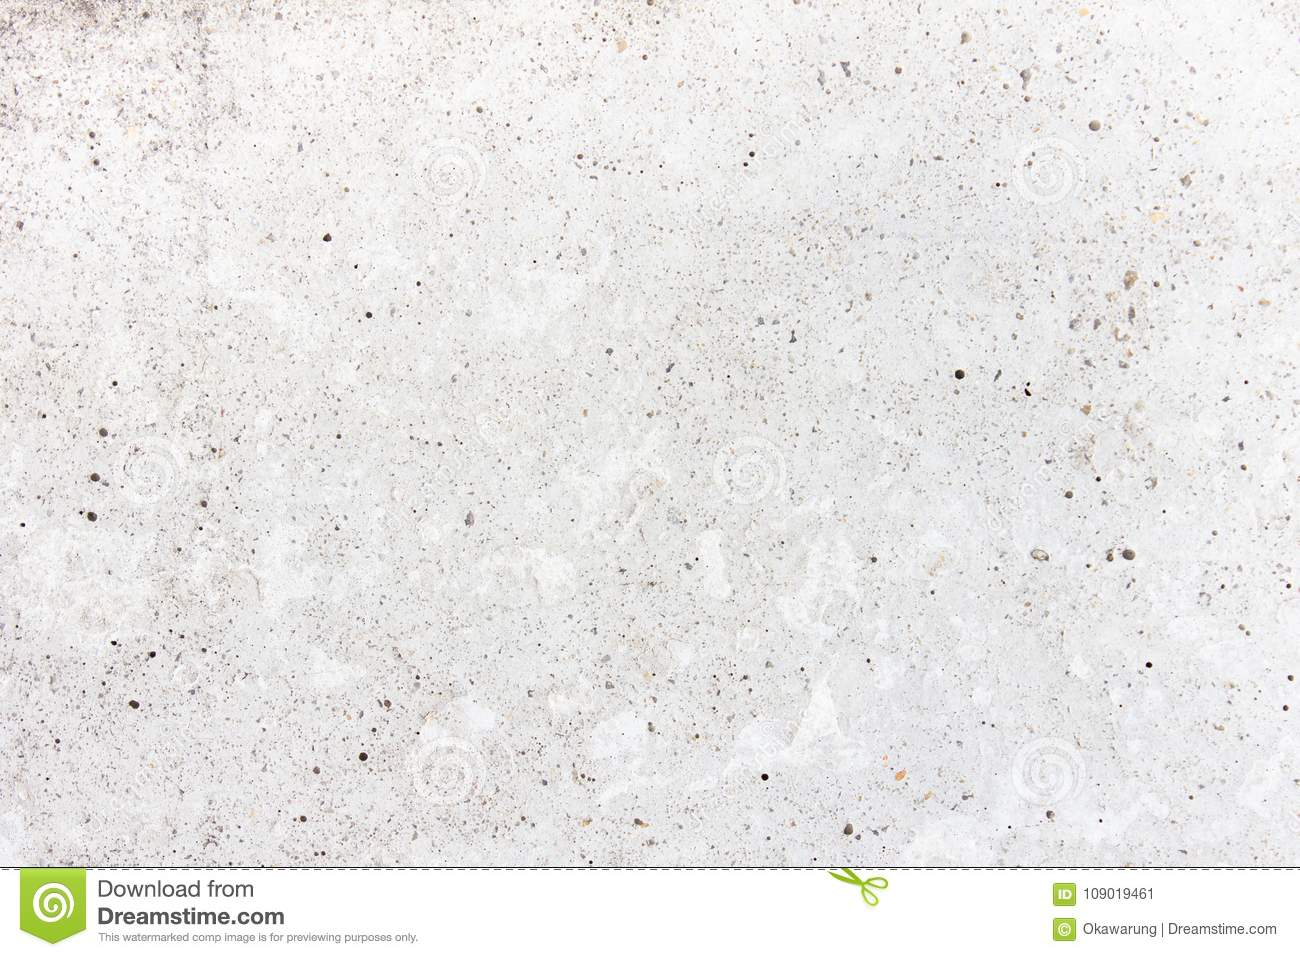 Texture Walls Design Abstrack Grunge Texture Wall Background For White Concrete Grunge